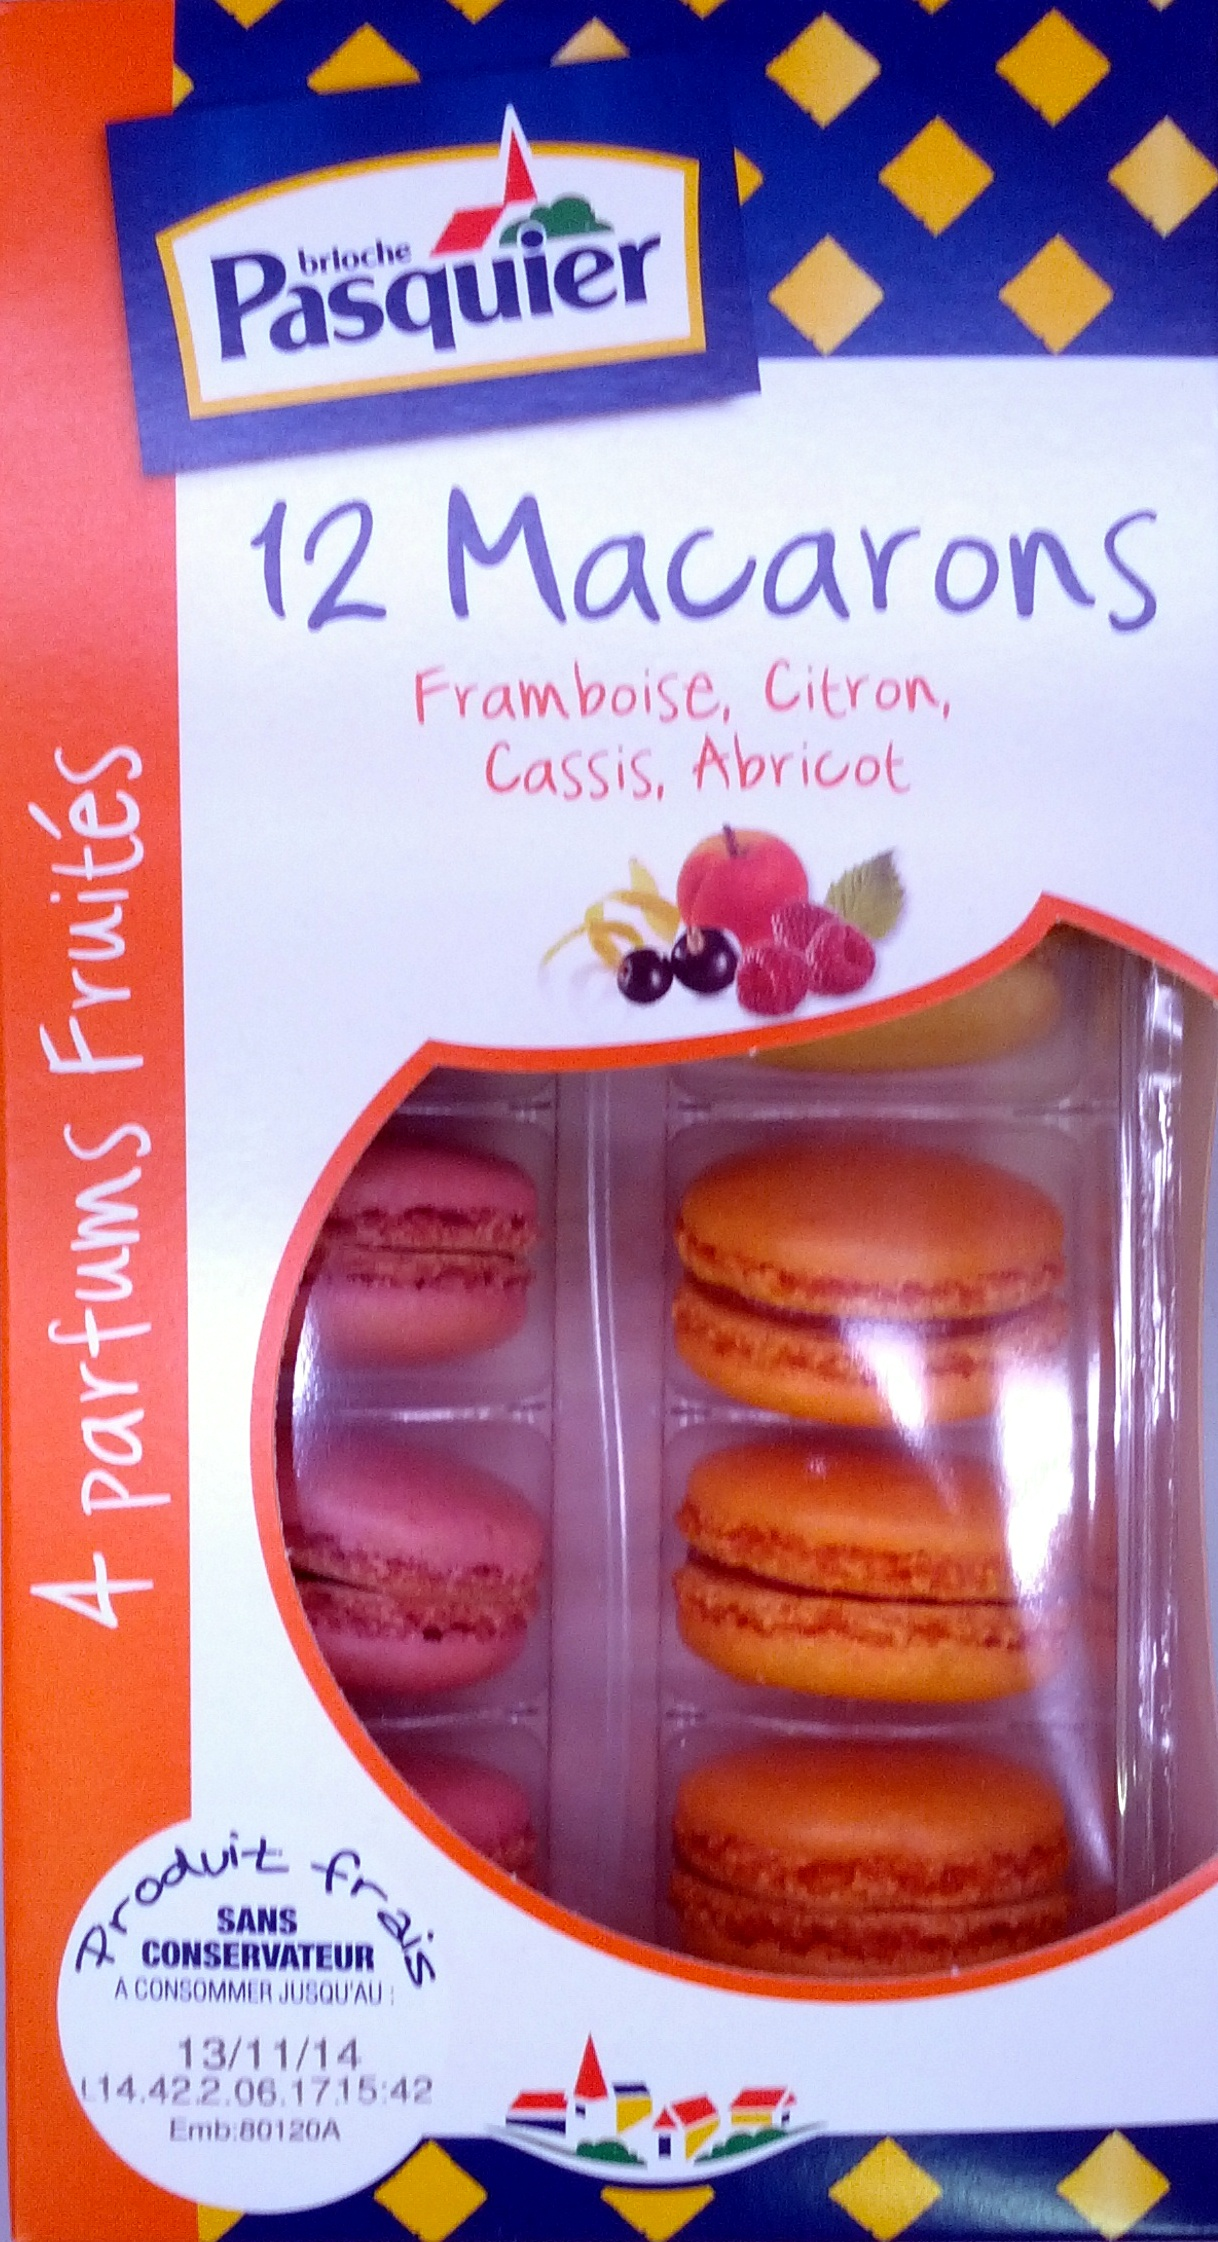 12 Macarons Framboise, Citron, Cassis, Abricot - Product - fr